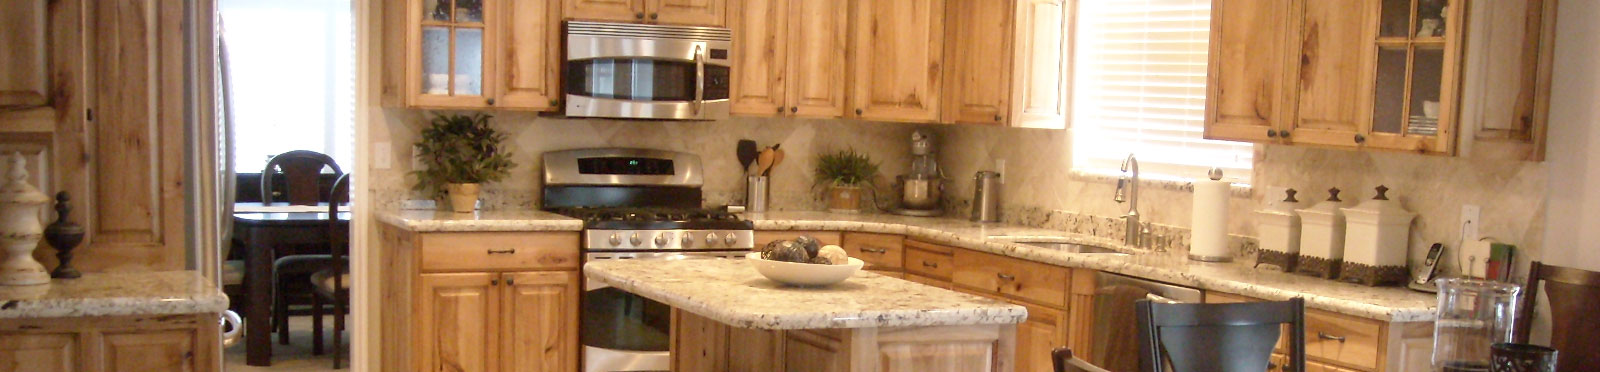 Cache County Utah Kitchen And Bathroom Remodeling 3 Day Kitchen